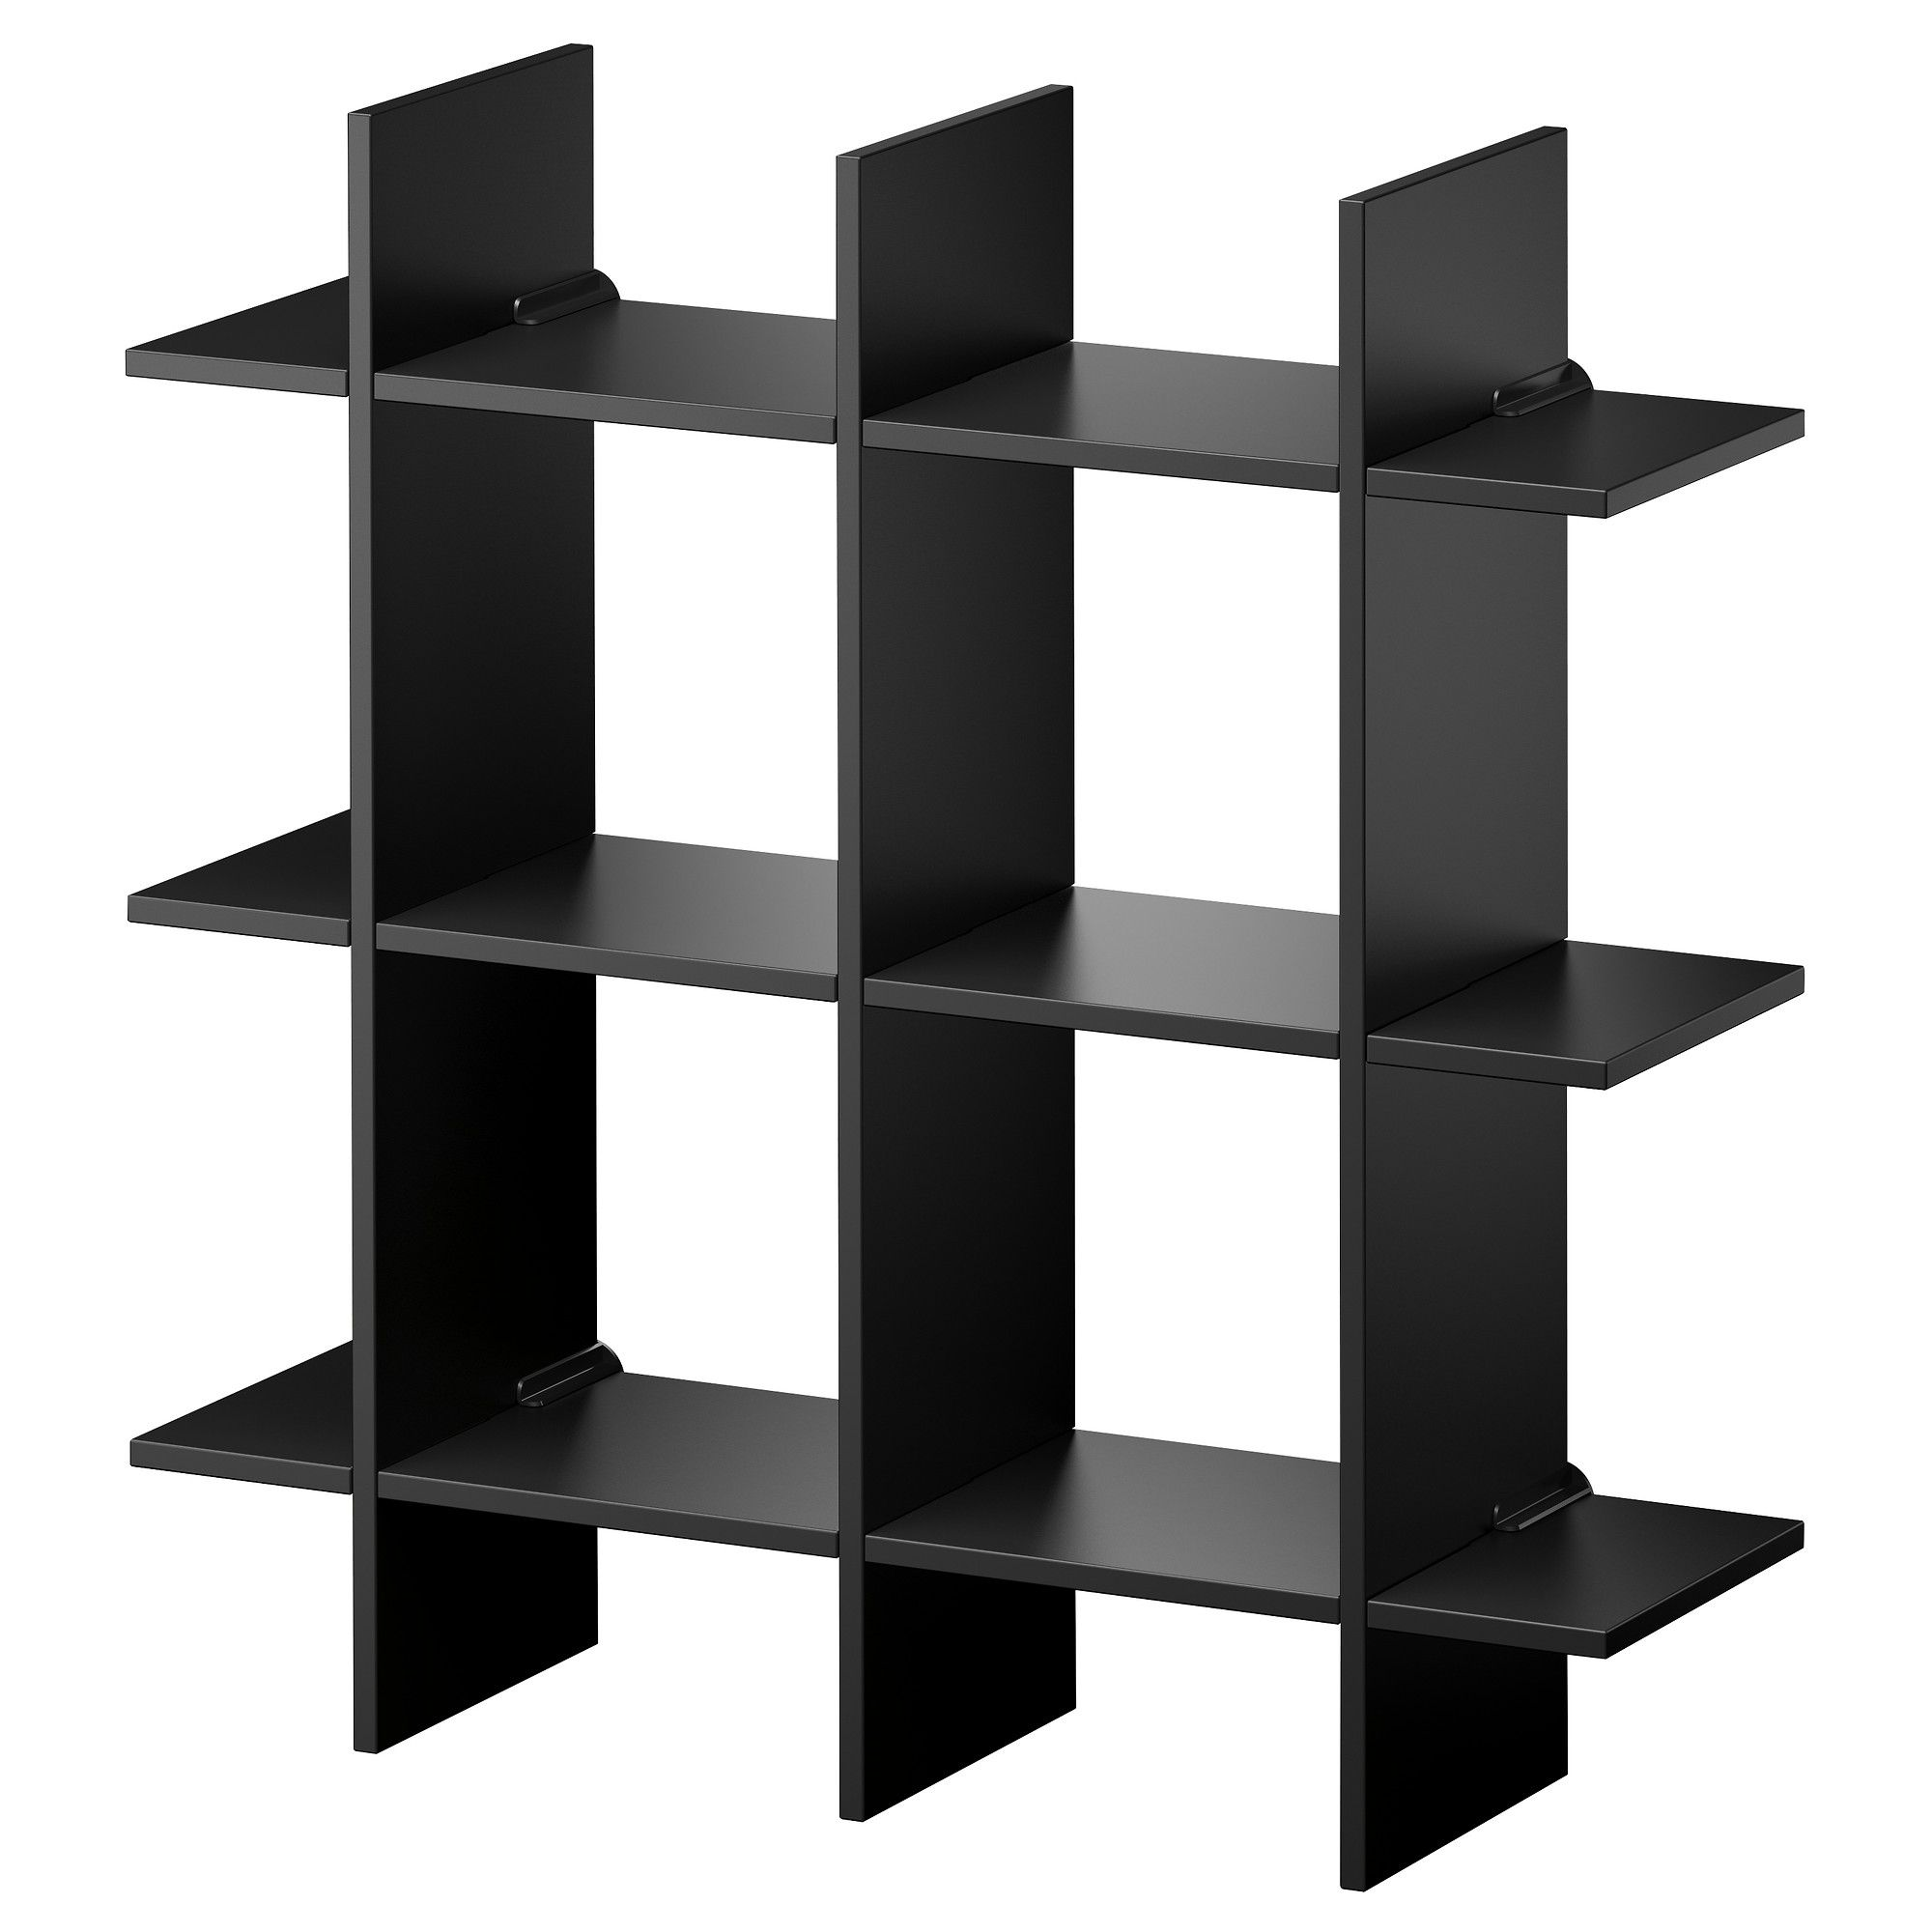 udden wall shelf ikea ikea for salon pinterest tag res murale ikea et murale. Black Bedroom Furniture Sets. Home Design Ideas